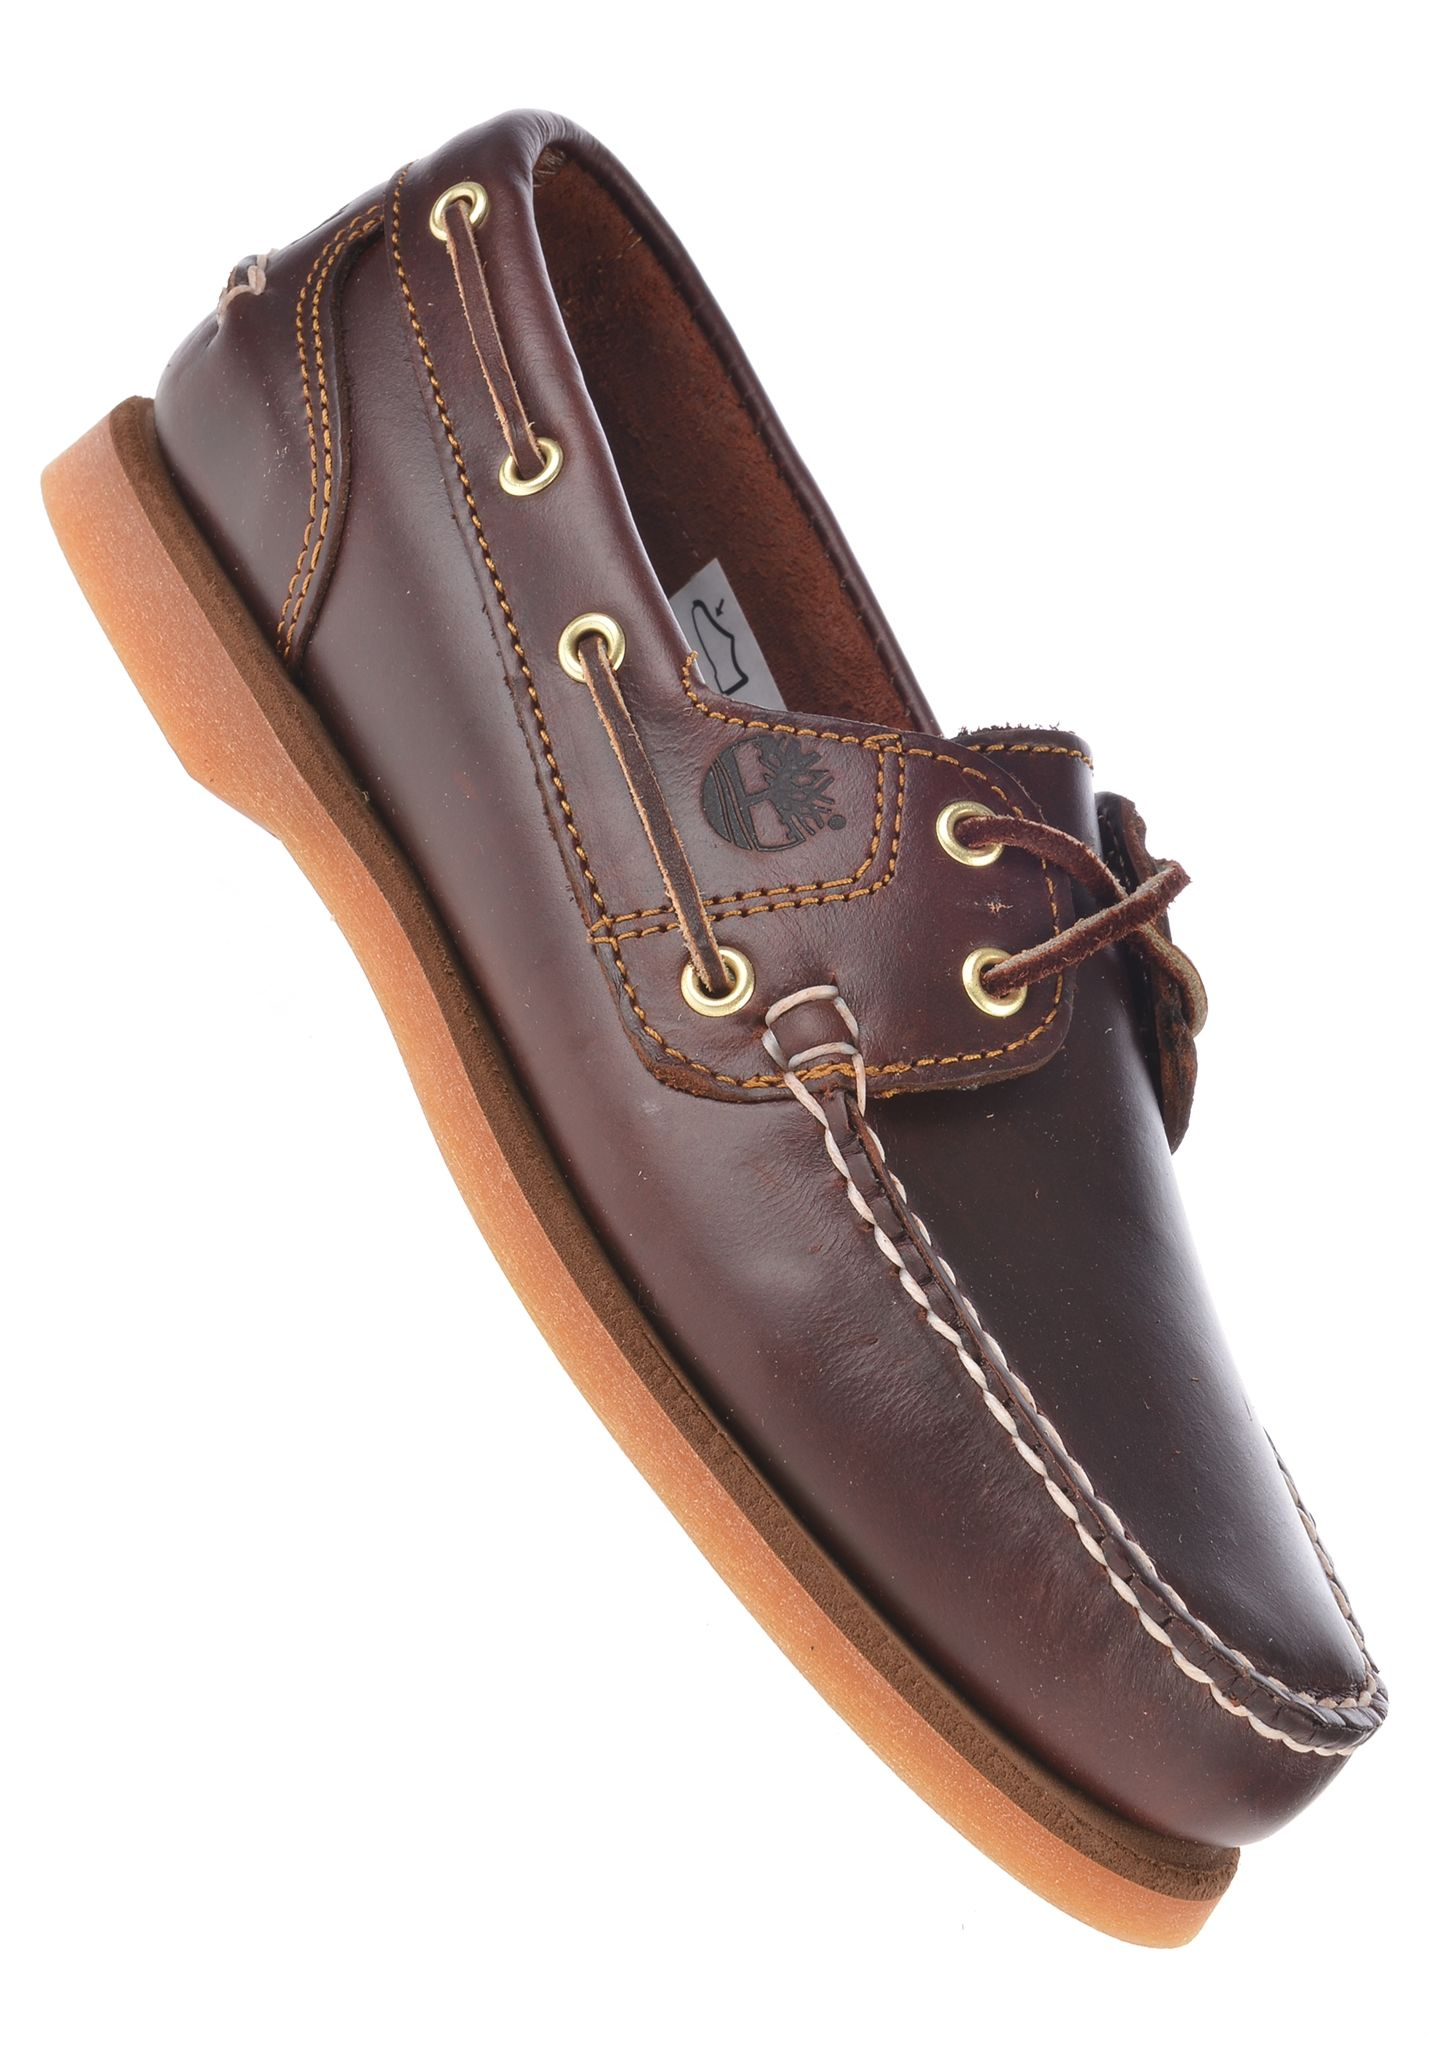 TIMBERLAND Classic Boat 2 Eye - Fashion Shoes for Women - Brown - Planet Sports